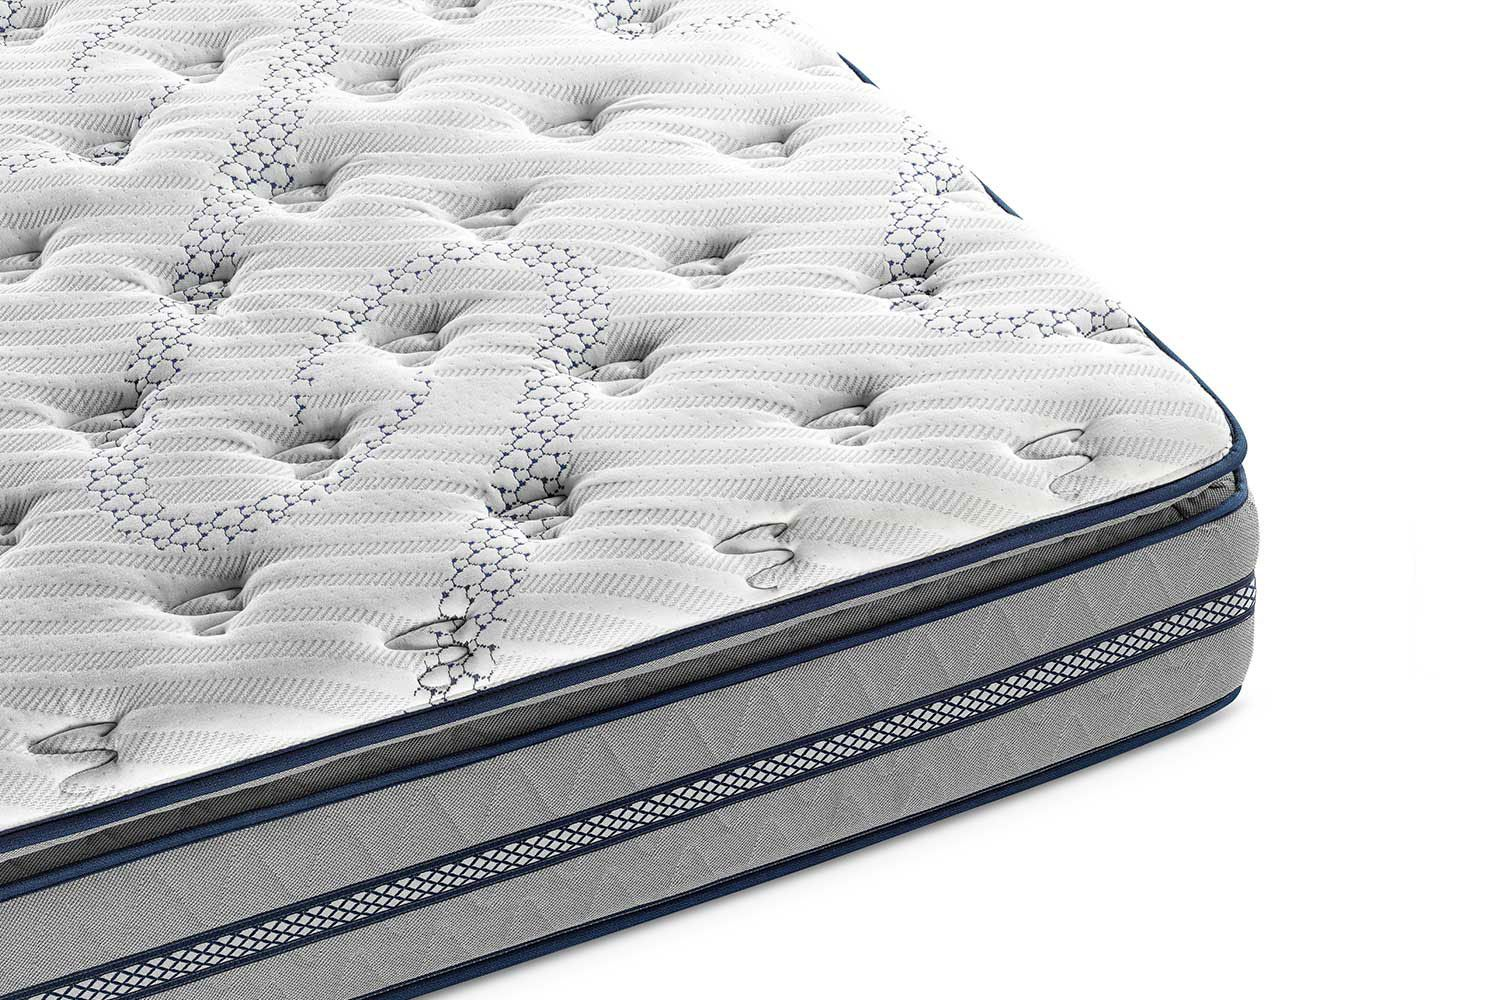 Exception Luxury From Royal Rest Mattress In 2020 Mattress Best Mattress Custom Size Mattress